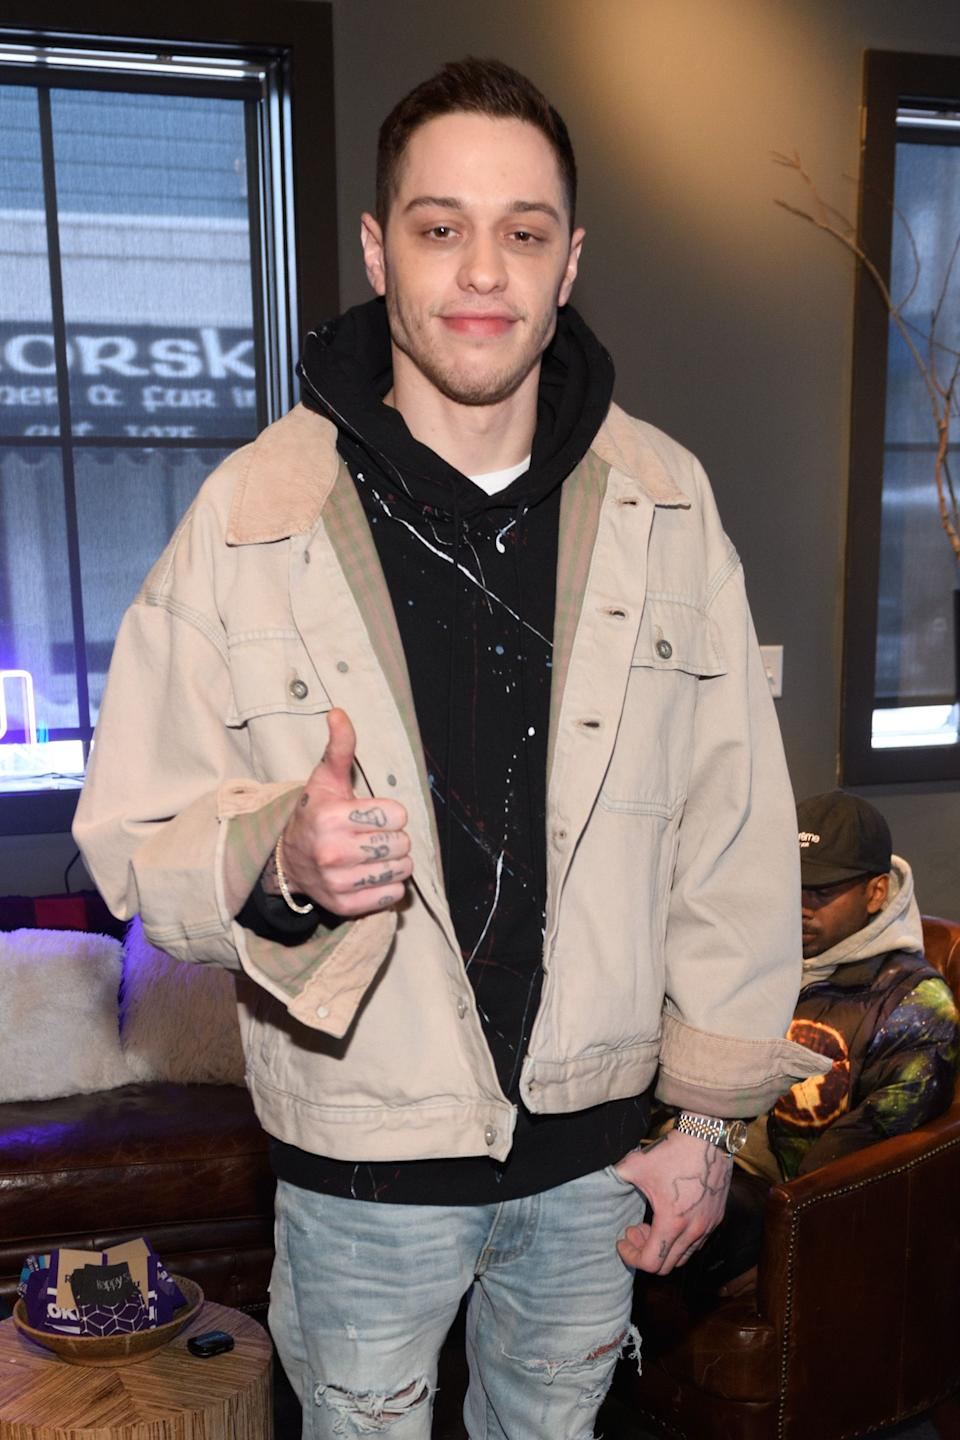 Pete Davidson poses for a photo